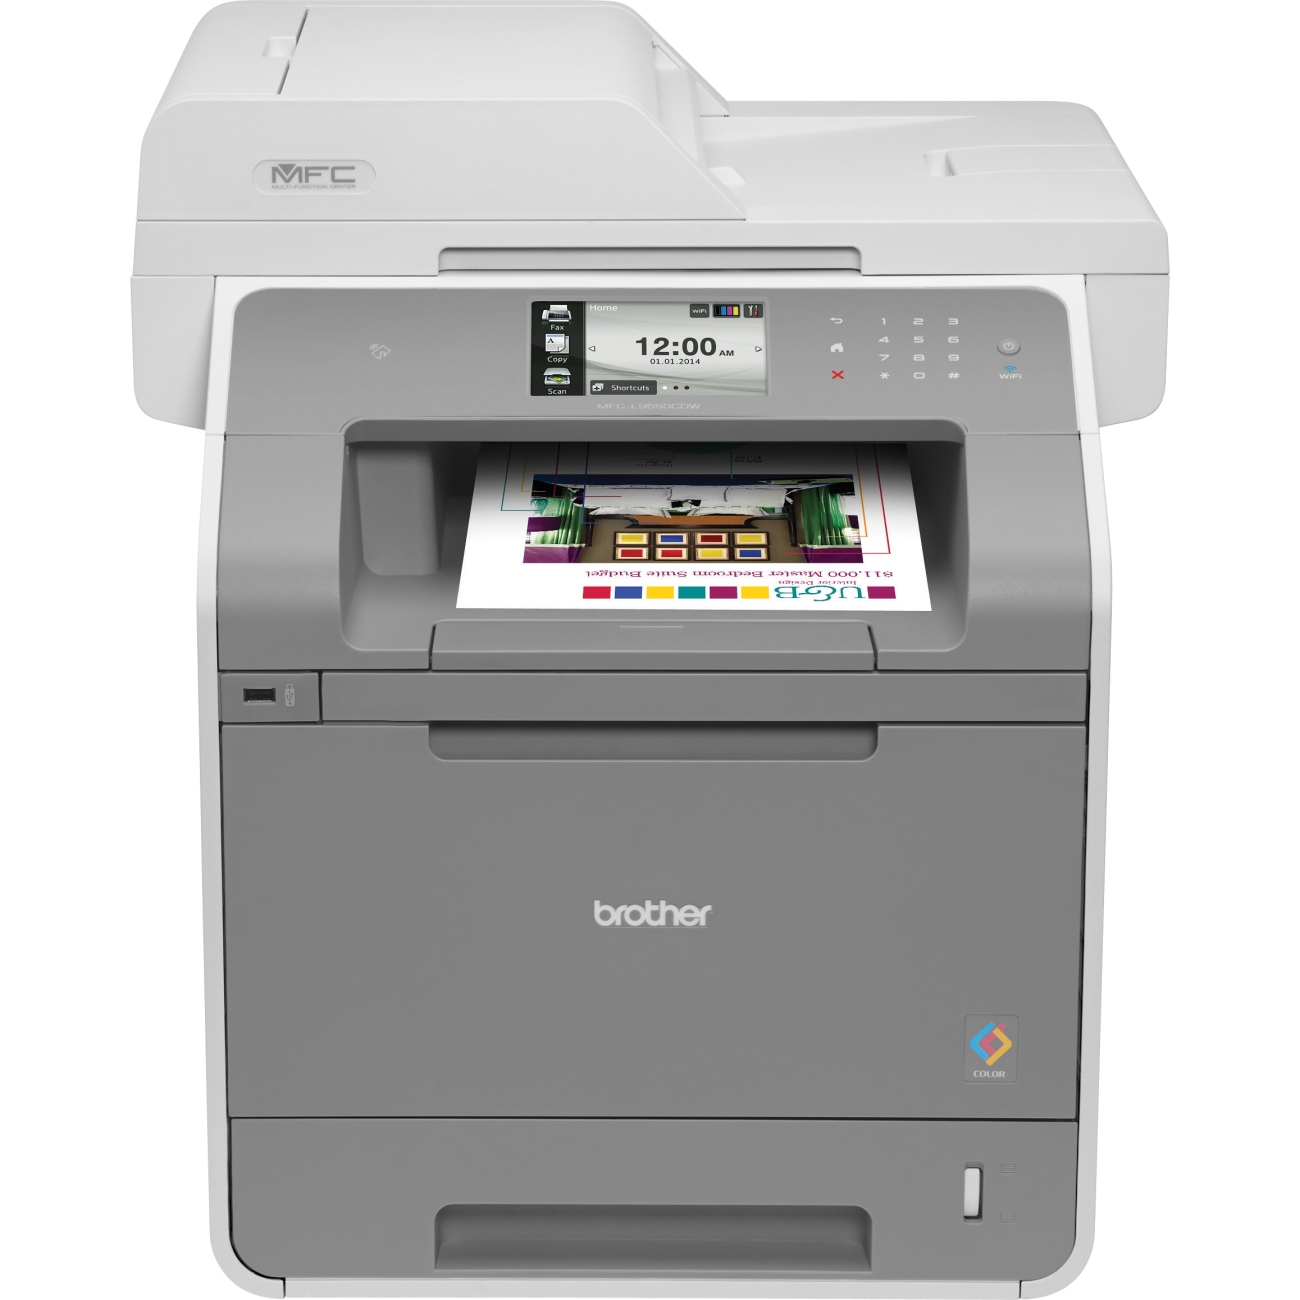 Brother Mfc-l9550cdw Laser Multifunction Printer - Color - Plain Paper Print - Desktop - Copier/fax/printer/scanner - 32 Ppm Mono/32 Ppm Color Print - 2400 X 600 Dpi Print - 32 Cpm (mfc-l9550cdw)